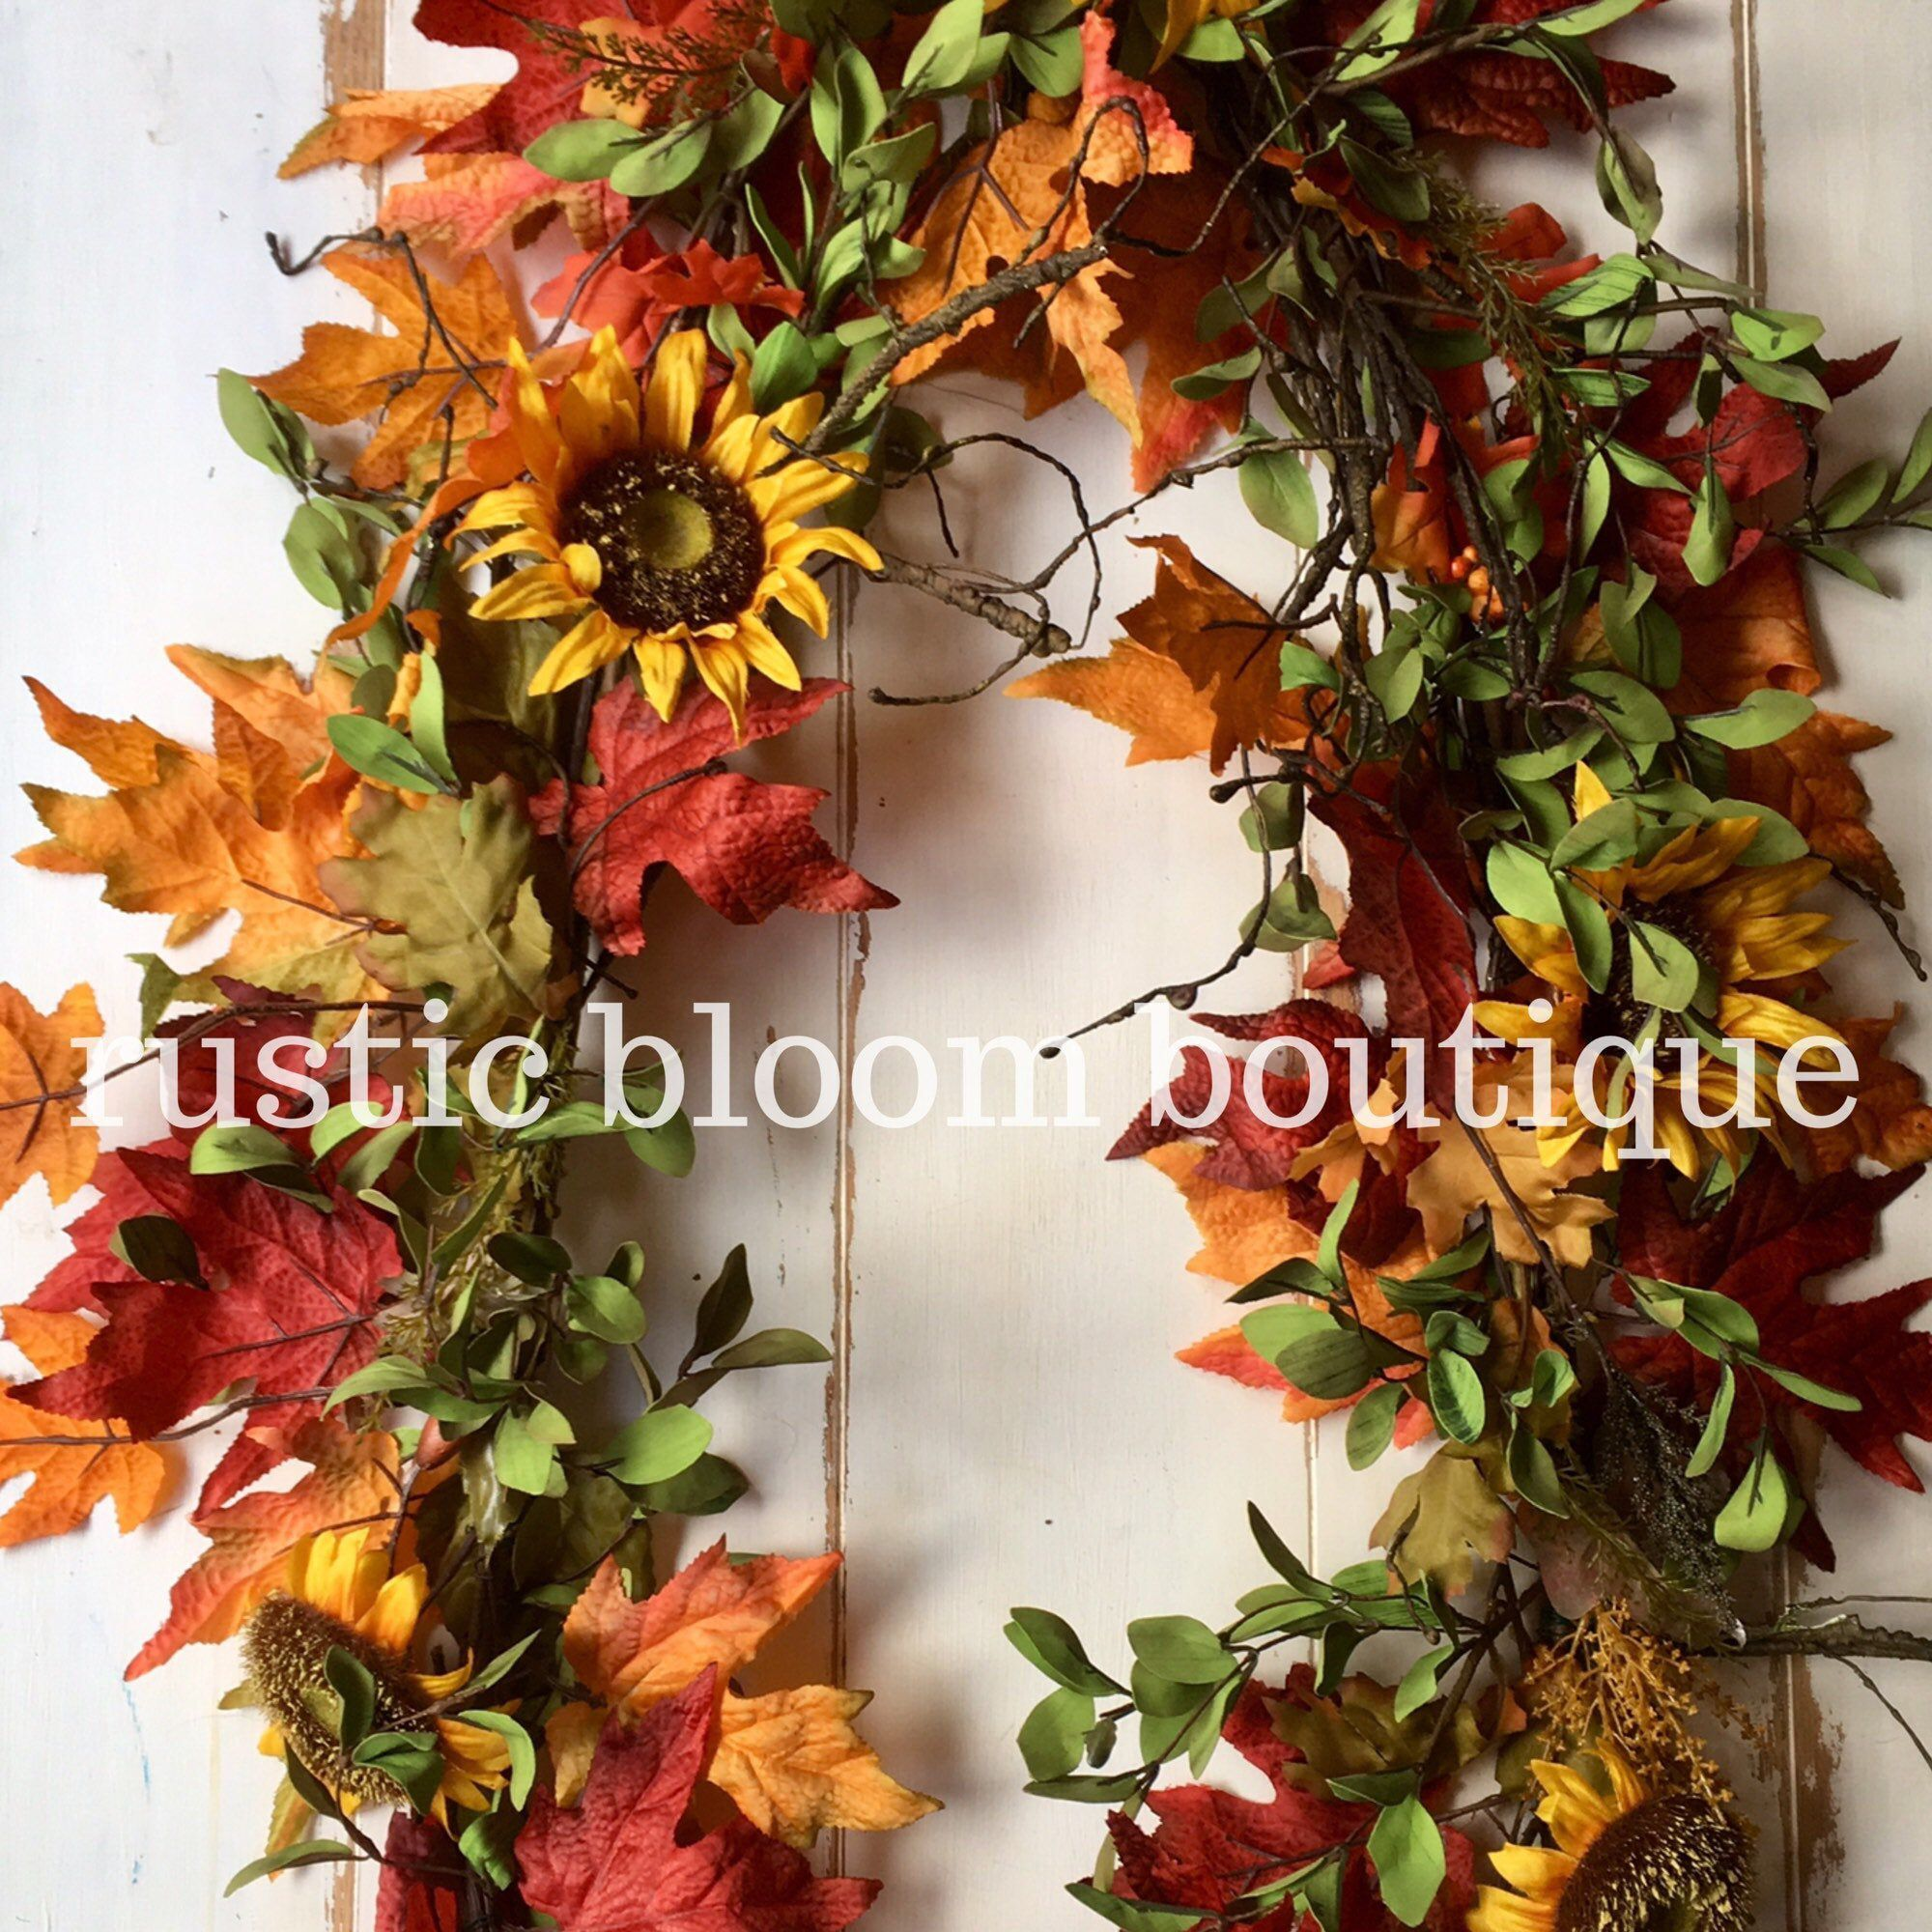 Fall farmhouse garland; fall mantle decor; autumn leaves garland; fall farmhouse wedding decor; sunflower garland; french country decor #fallmantledecor Excited to share this item from my #etsy shop: Fall farmhouse garland; fall mantle decor; autumn leaves garland; fall farmhouse wedding decor; sunflower garland; french country decor #fallmantledecor Fall farmhouse garland; fall mantle decor; autumn leaves garland; fall farmhouse wedding decor; sunflower garland; french country decor #fallmantle #fallmantledecor